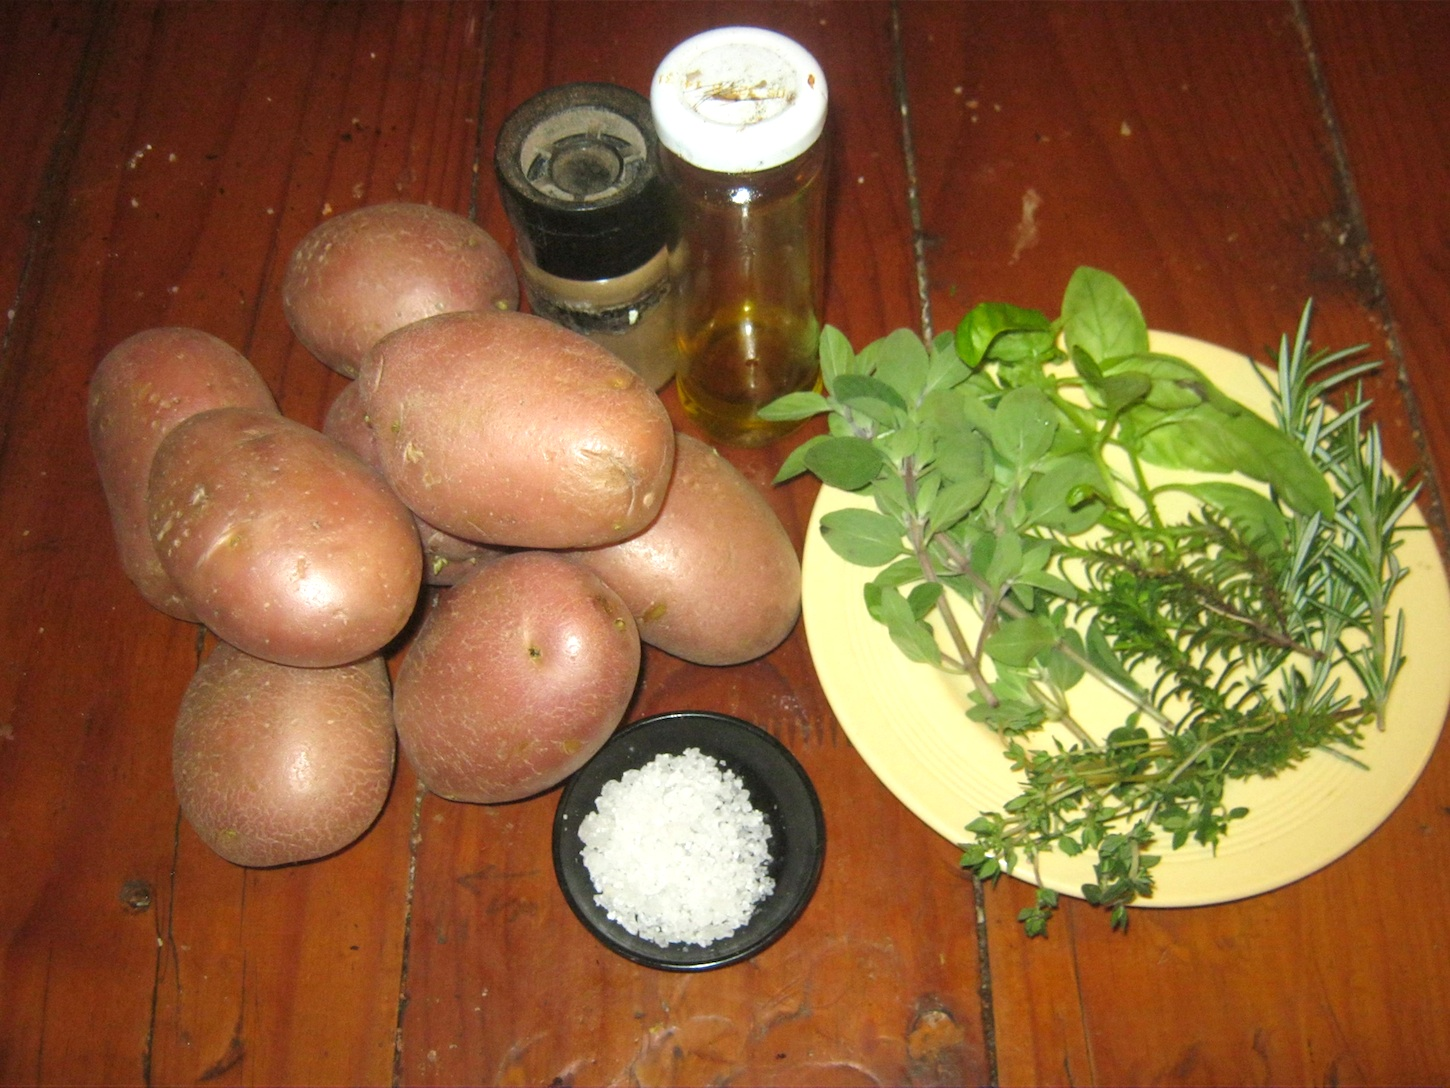 Ingredients for baked potatoes with fresh garden herbs.